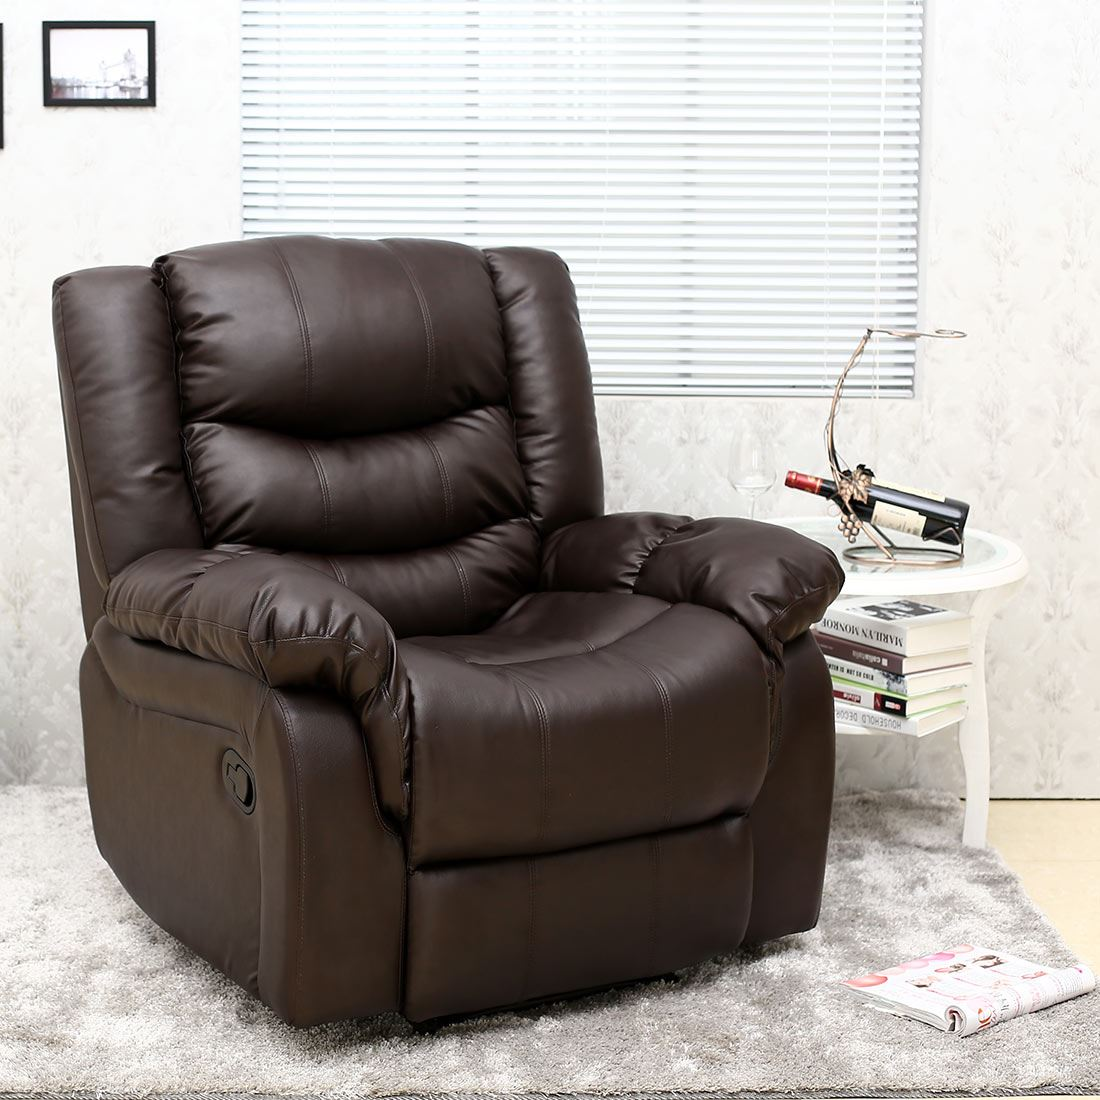 leather lounge armchair seattle leather recliner armchair sofa home lounge chair 16659 | d507aaba ce4c 4f80 a3e7 748fb12c7cd1